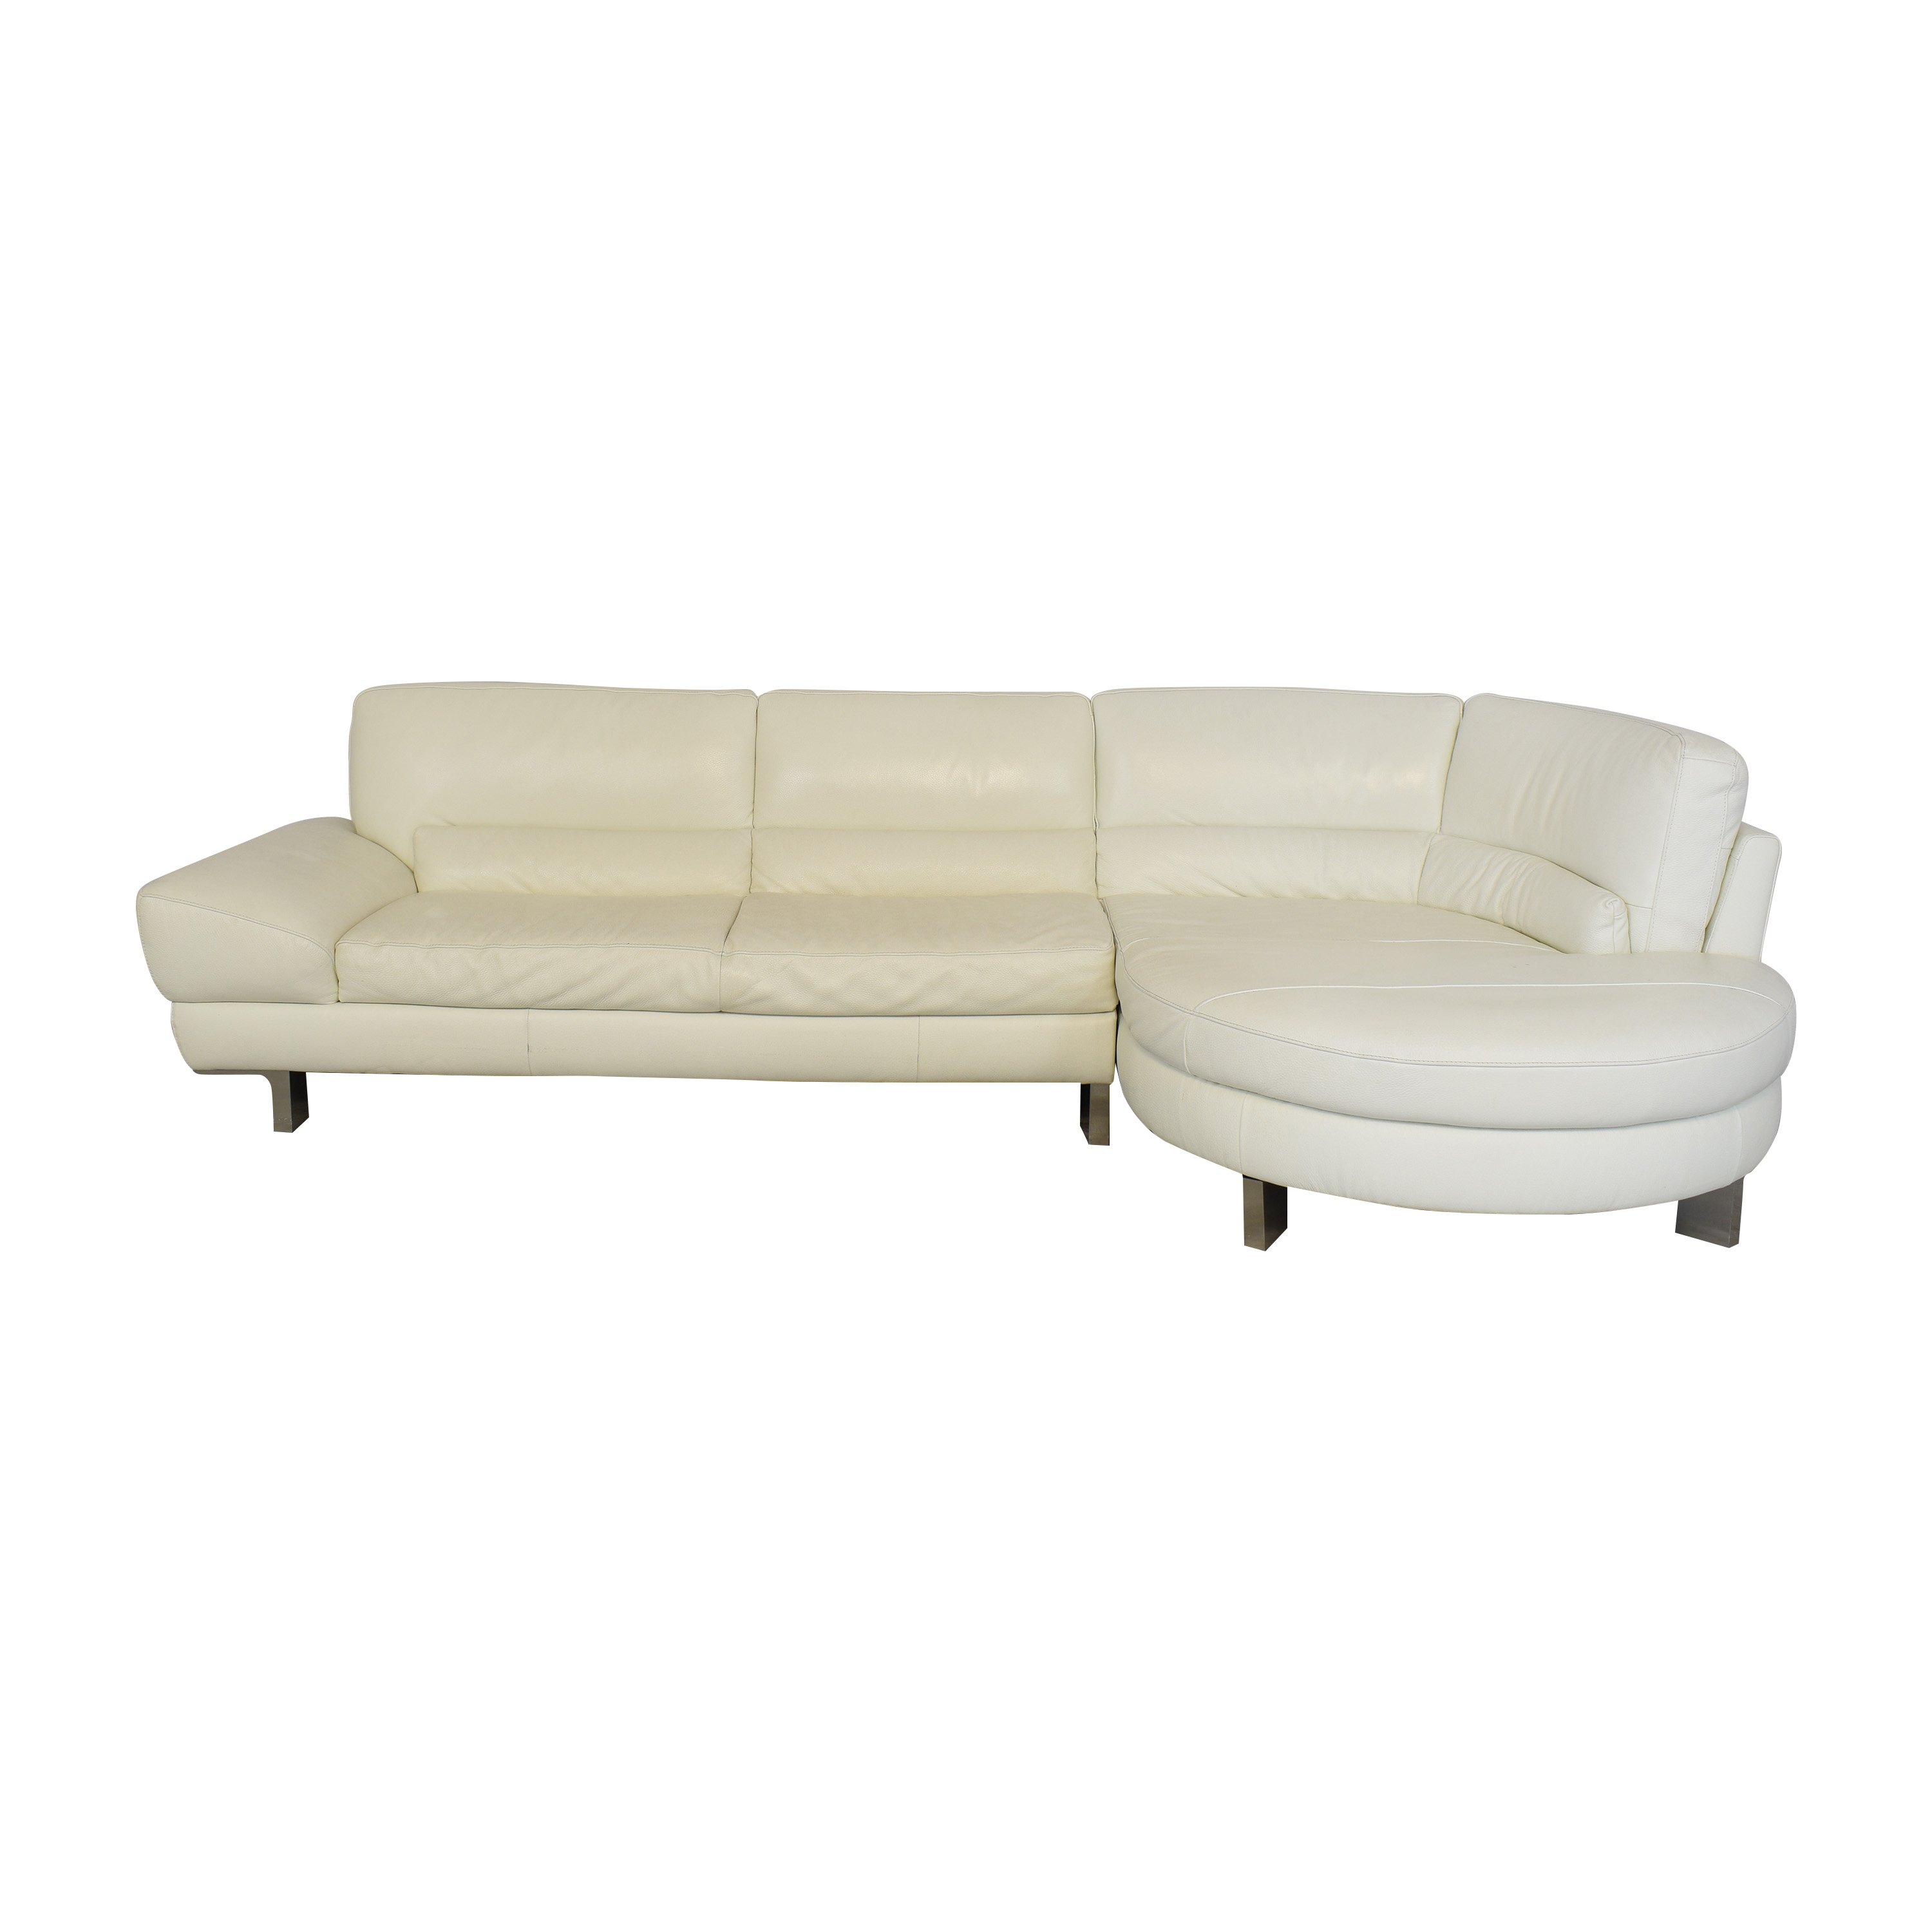 Italsofa Italsofa Curved Sectional Sofa dimensions